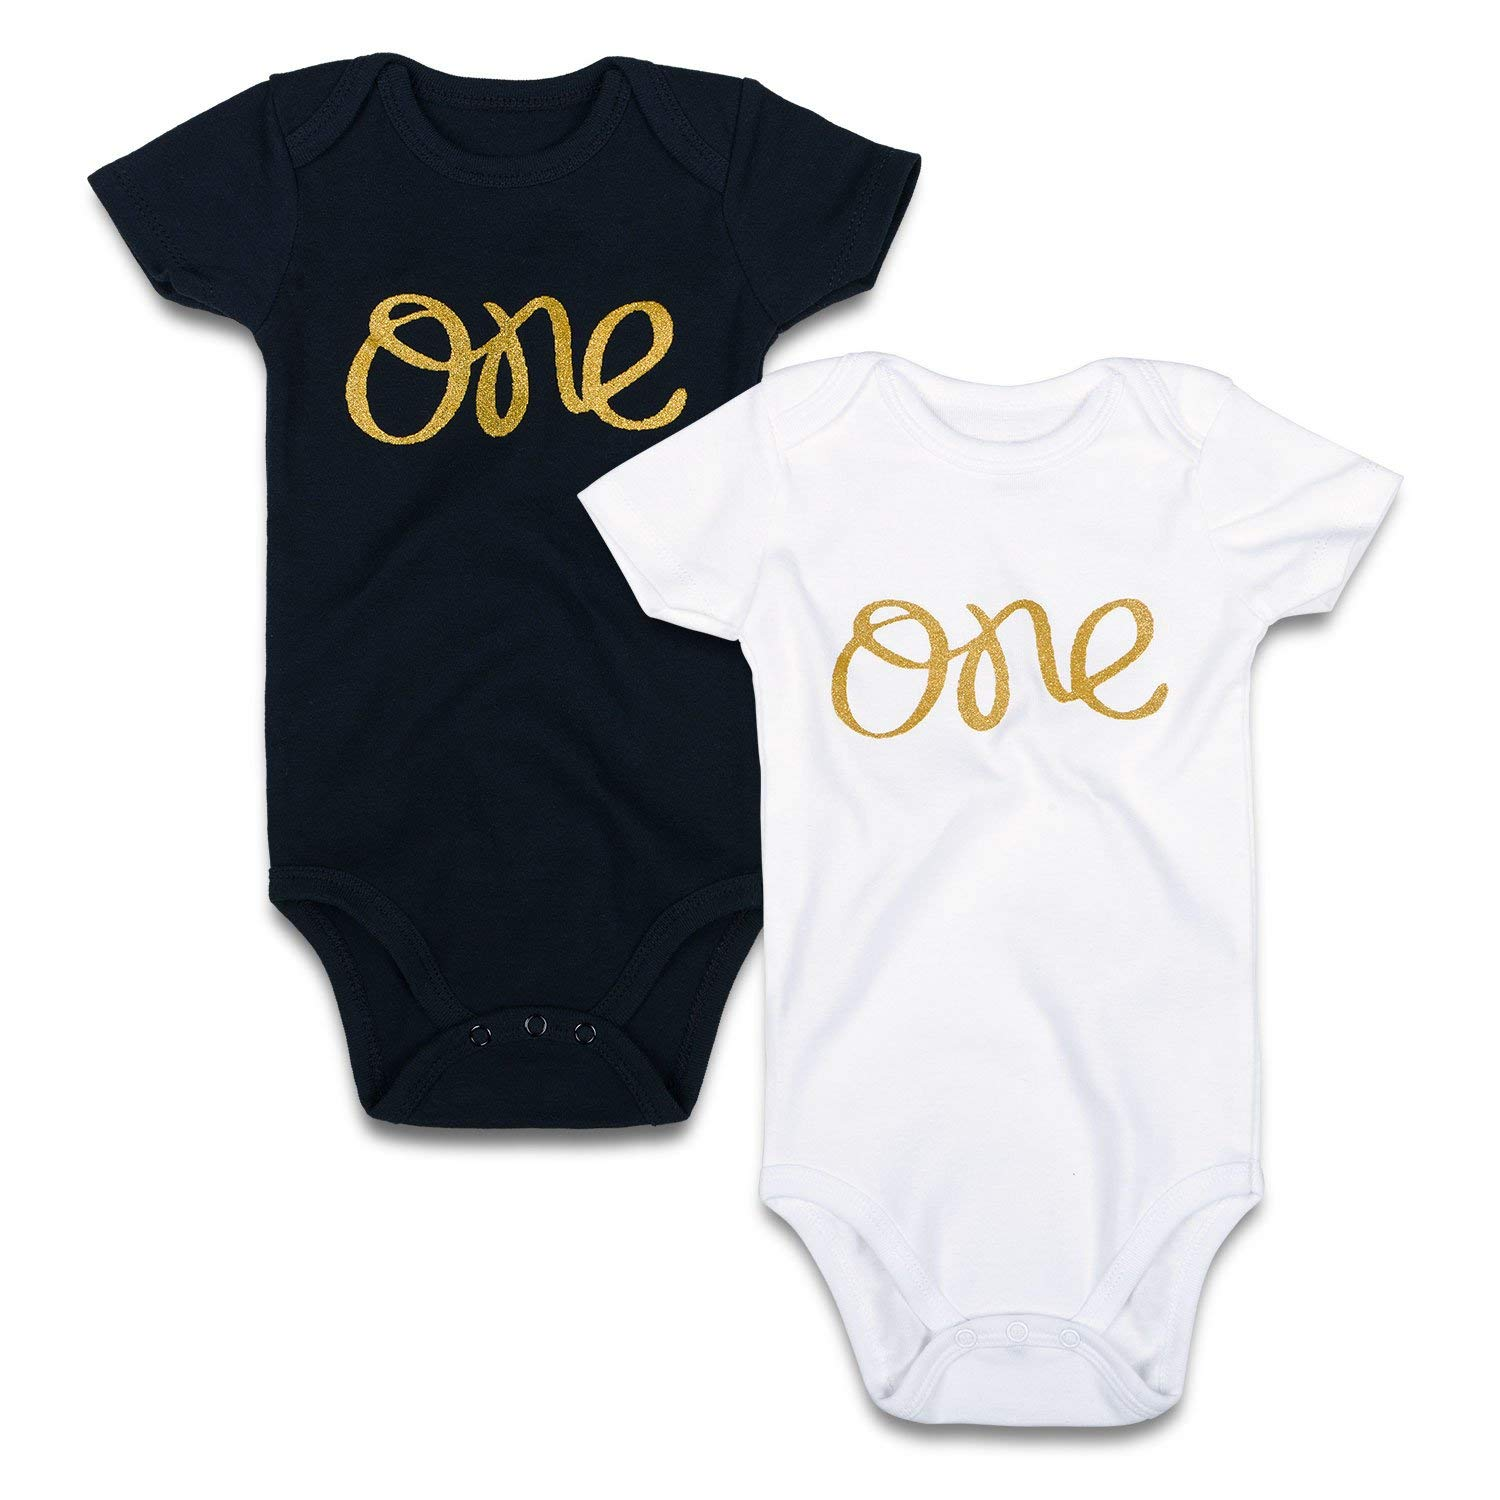 33ac5f73cc Get Quotations · SOBOWO Gold One 2-Pack Short Sleeve Bodysuits for Newborn  Girls Boys